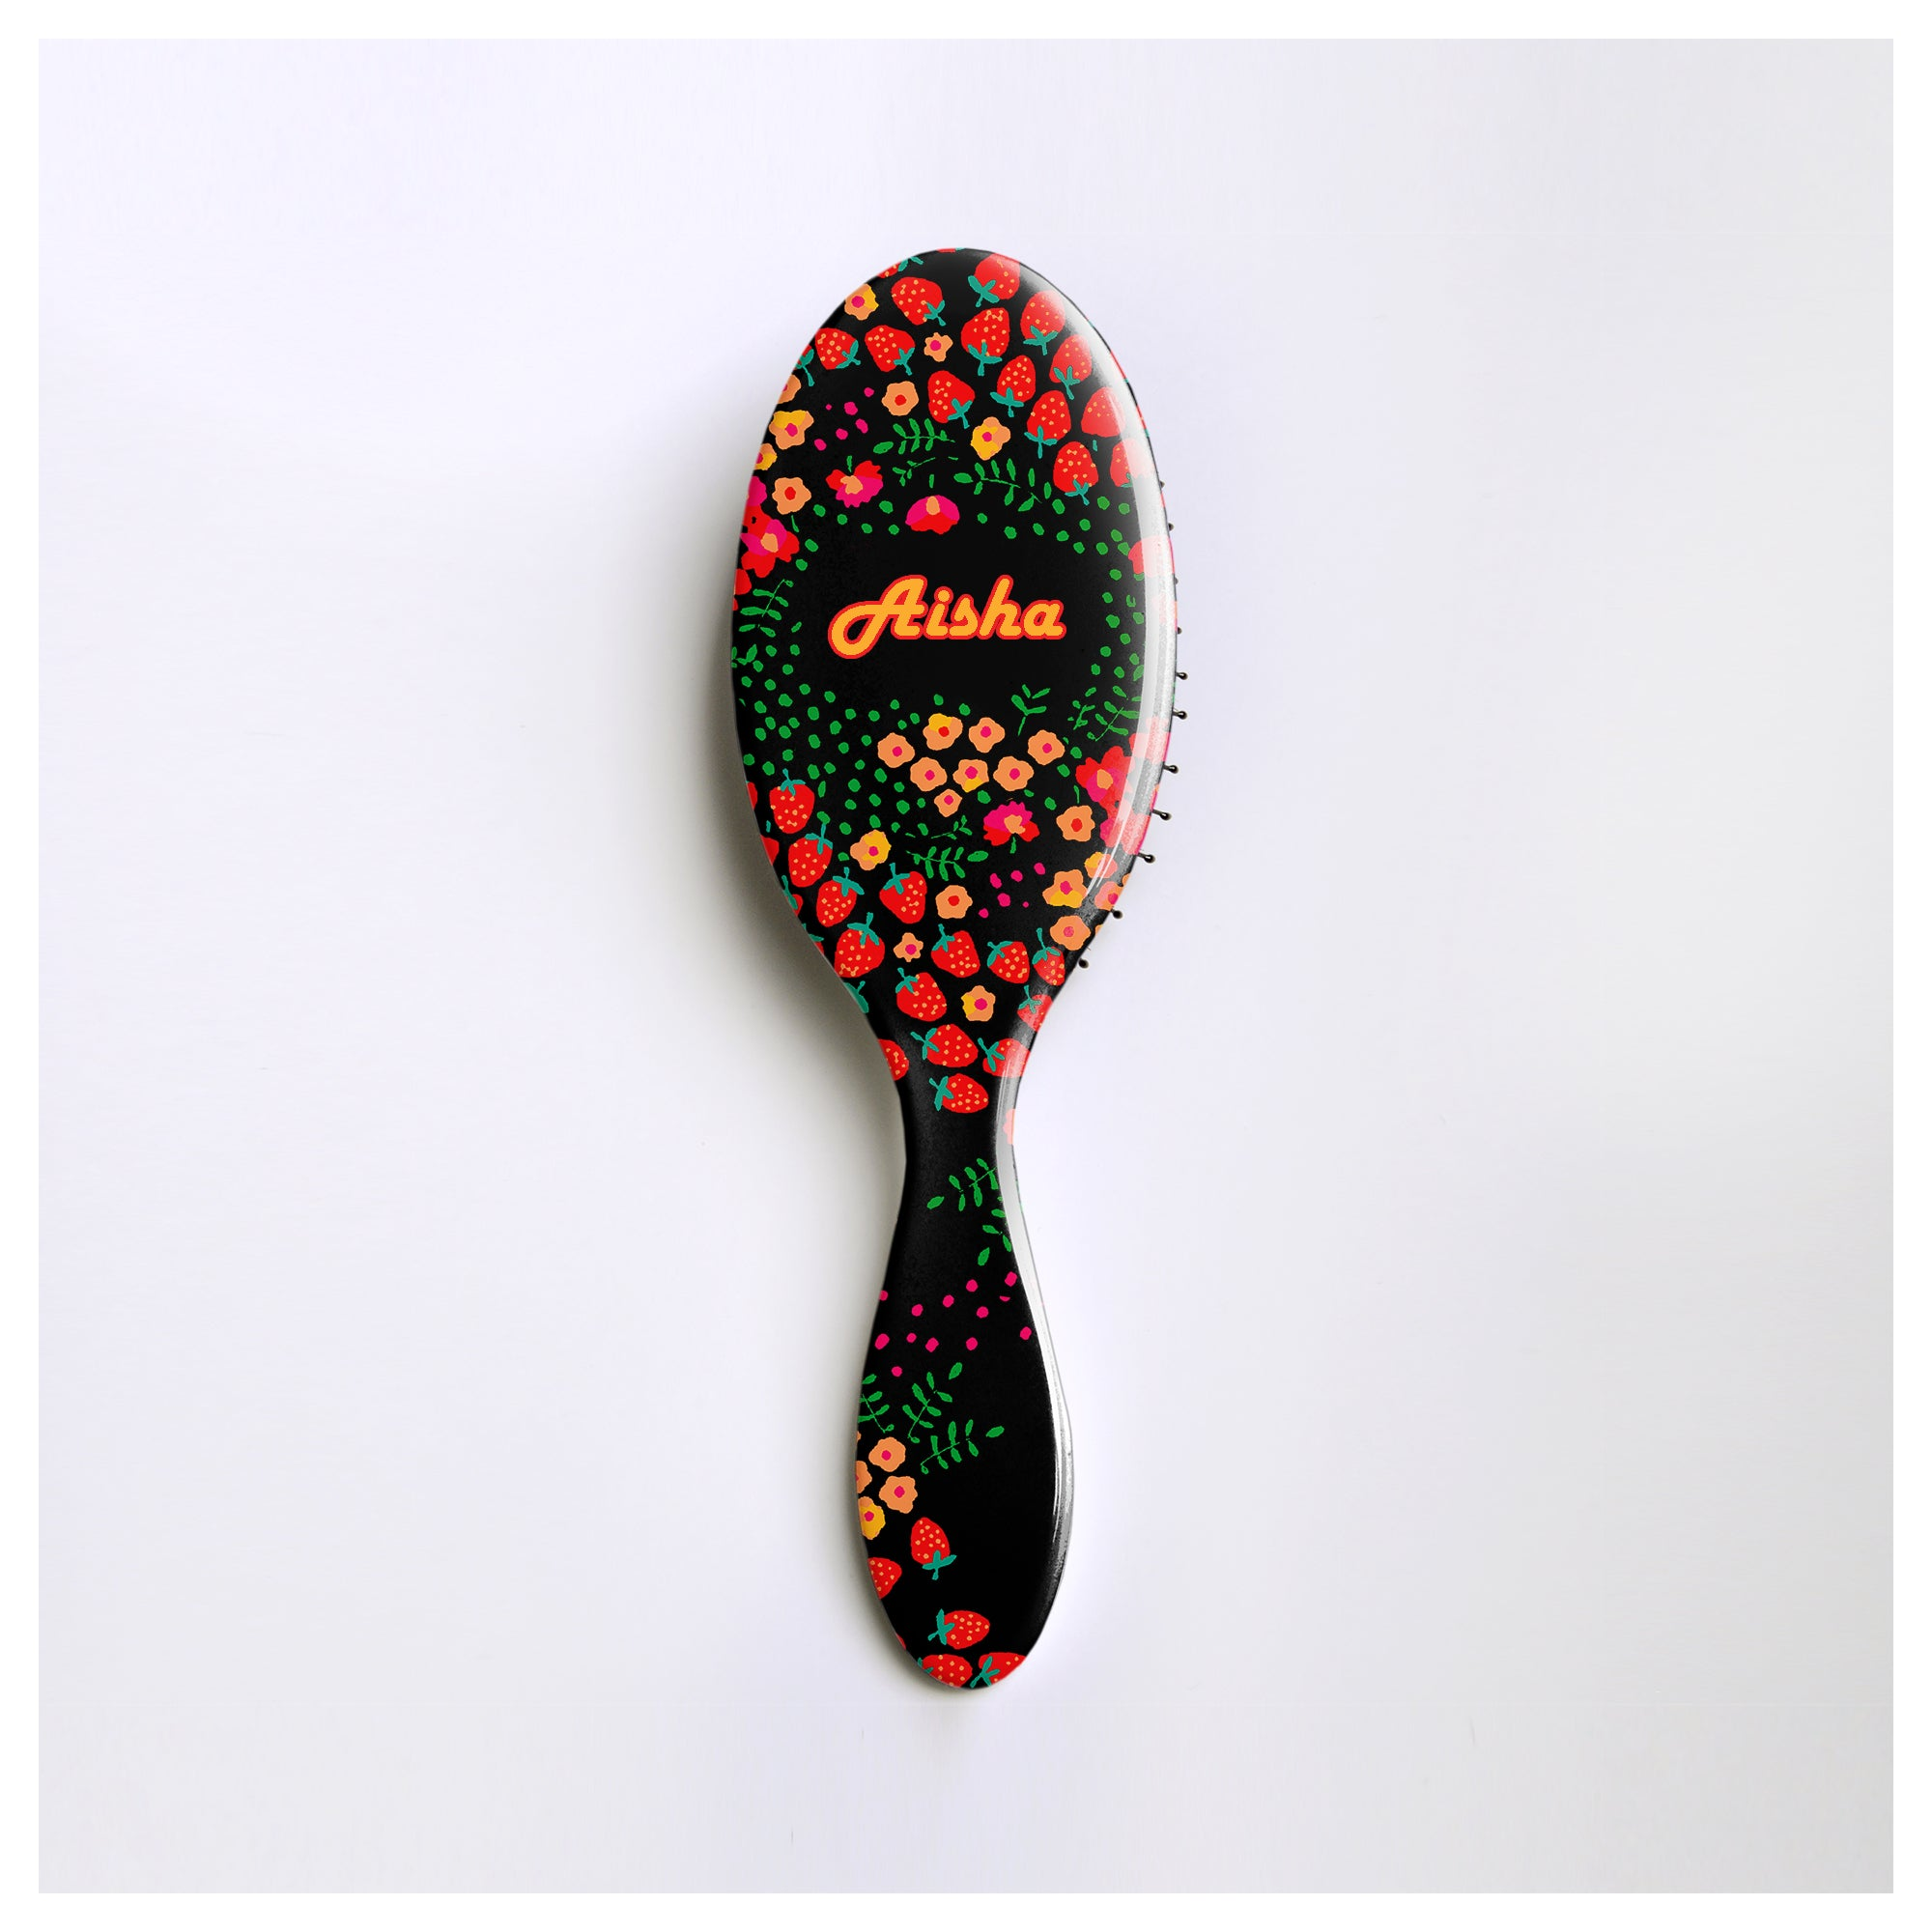 Hair Brush Personalised - Cute Strawberry Design - Anja Jane Folk Art